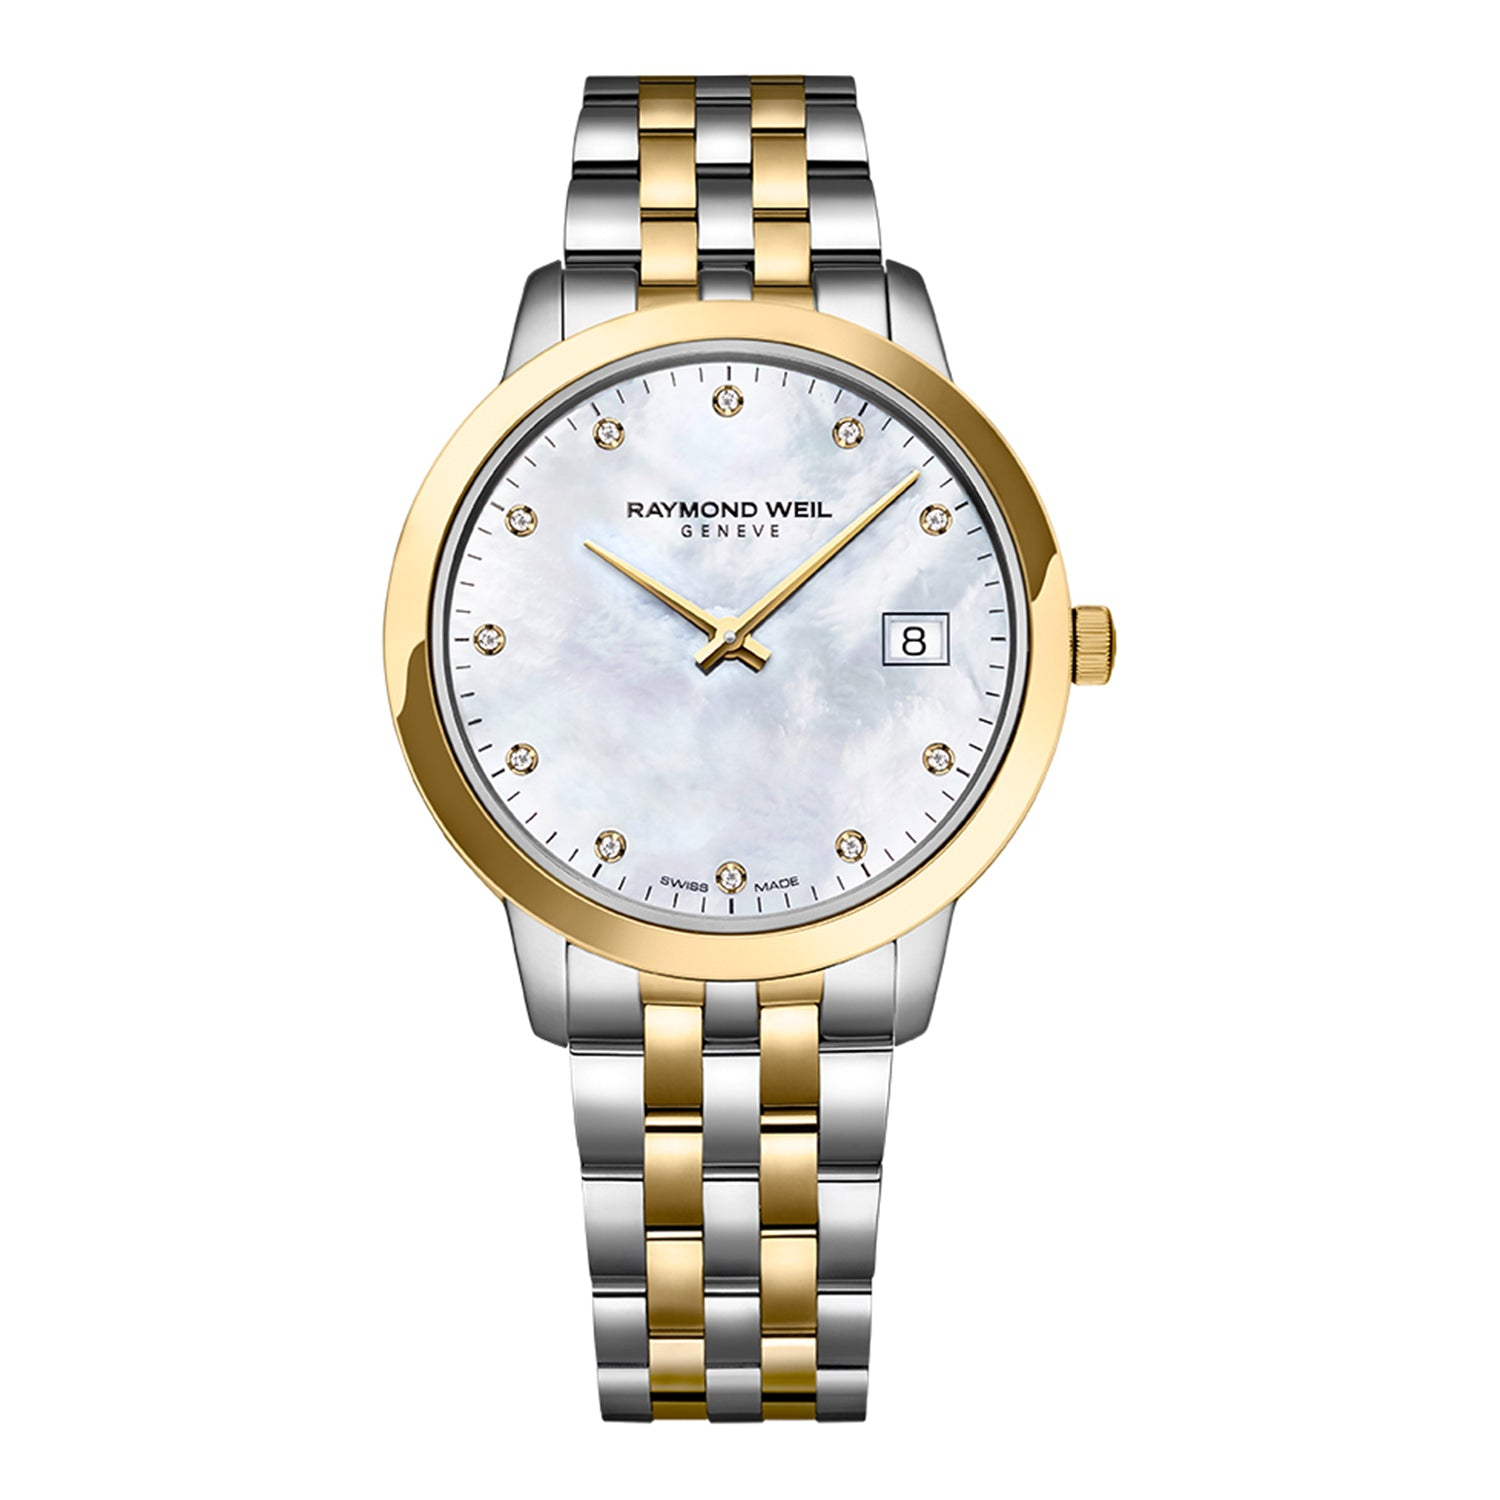 Raymond Weil Toccata Ladies Quartz Two-tone Gold 11 Diamond Watch, 34mm, white mother-of-pearl dial, 5385-STP-97081